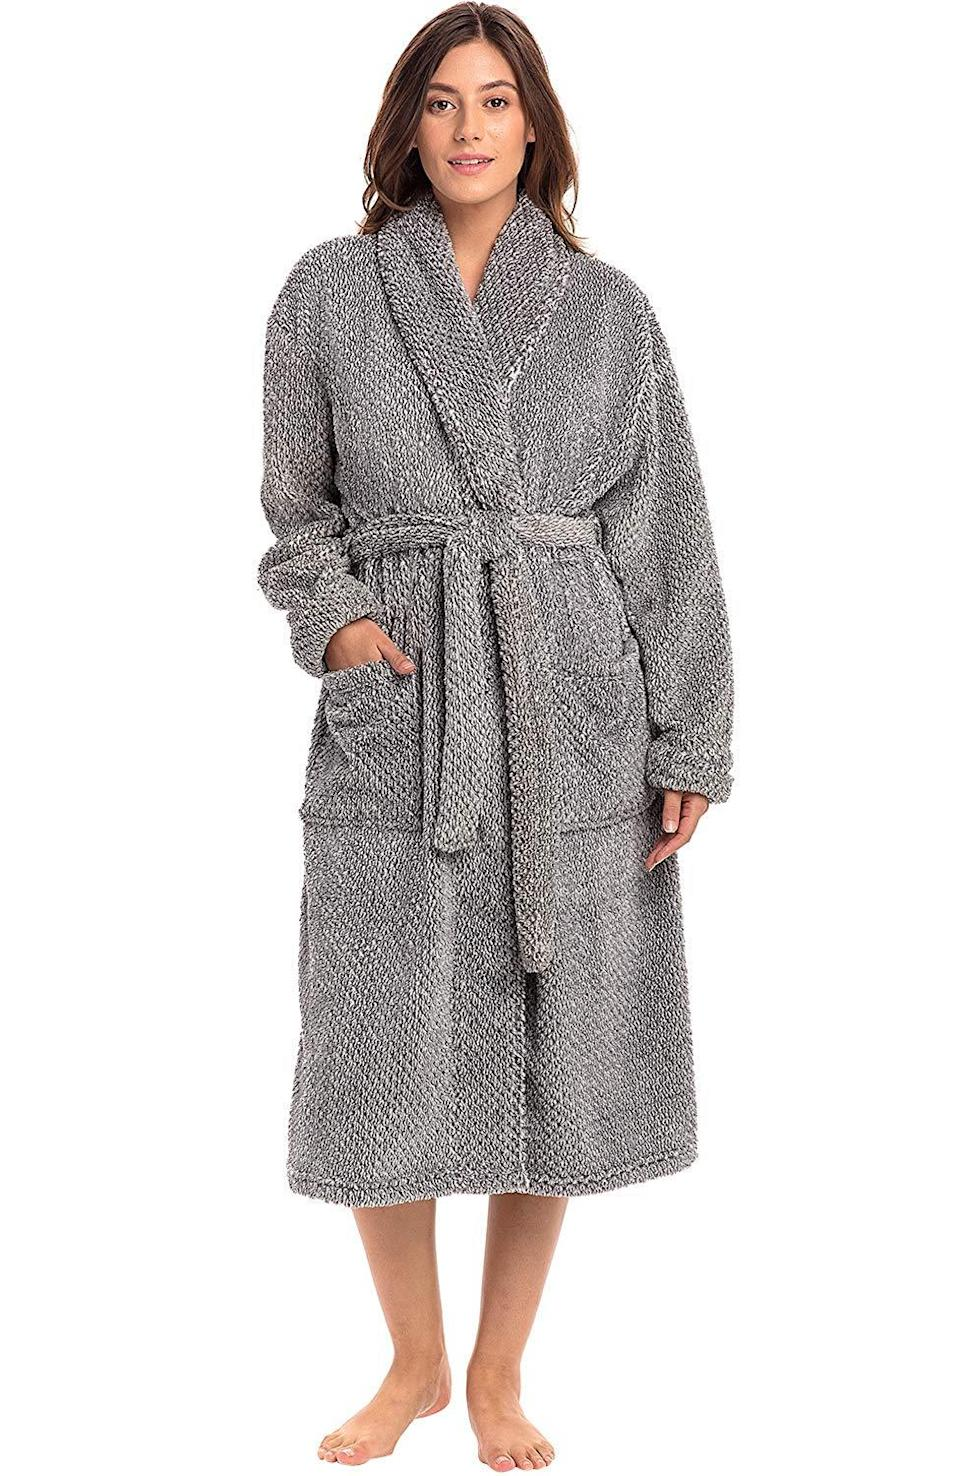 "<h3><a href=""https://amzn.to/32ZCO9Z"" rel=""nofollow noopener"" target=""_blank"" data-ylk=""slk:Alexander Del Rossa Plush Fleece Robe"" class=""link rapid-noclick-resp"">Alexander Del Rossa Plush Fleece Robe</a></h3> <br>This bathrobe is like wearing a teddy bear (but, like a luxury-loving, spa-going teddy bear) — it's crafted from 270-GSM velveteen fleece that will not fail to keep her cozied-up at home.<br><br>One customer cooed: ""This is the most lightweight, warmest, softest robe I have ever owned."" and ""GORGEOUS. Simply lush, plush, soft...can I get a bed made of this, please?"" <br><br><br><strong>Alexander Del Rossa</strong> Plush Fleece Robe, $, available at <a href=""https://amzn.to/2nZYPH3"" rel=""nofollow noopener"" target=""_blank"" data-ylk=""slk:Amazon"" class=""link rapid-noclick-resp"">Amazon</a><br><br><br><br>"